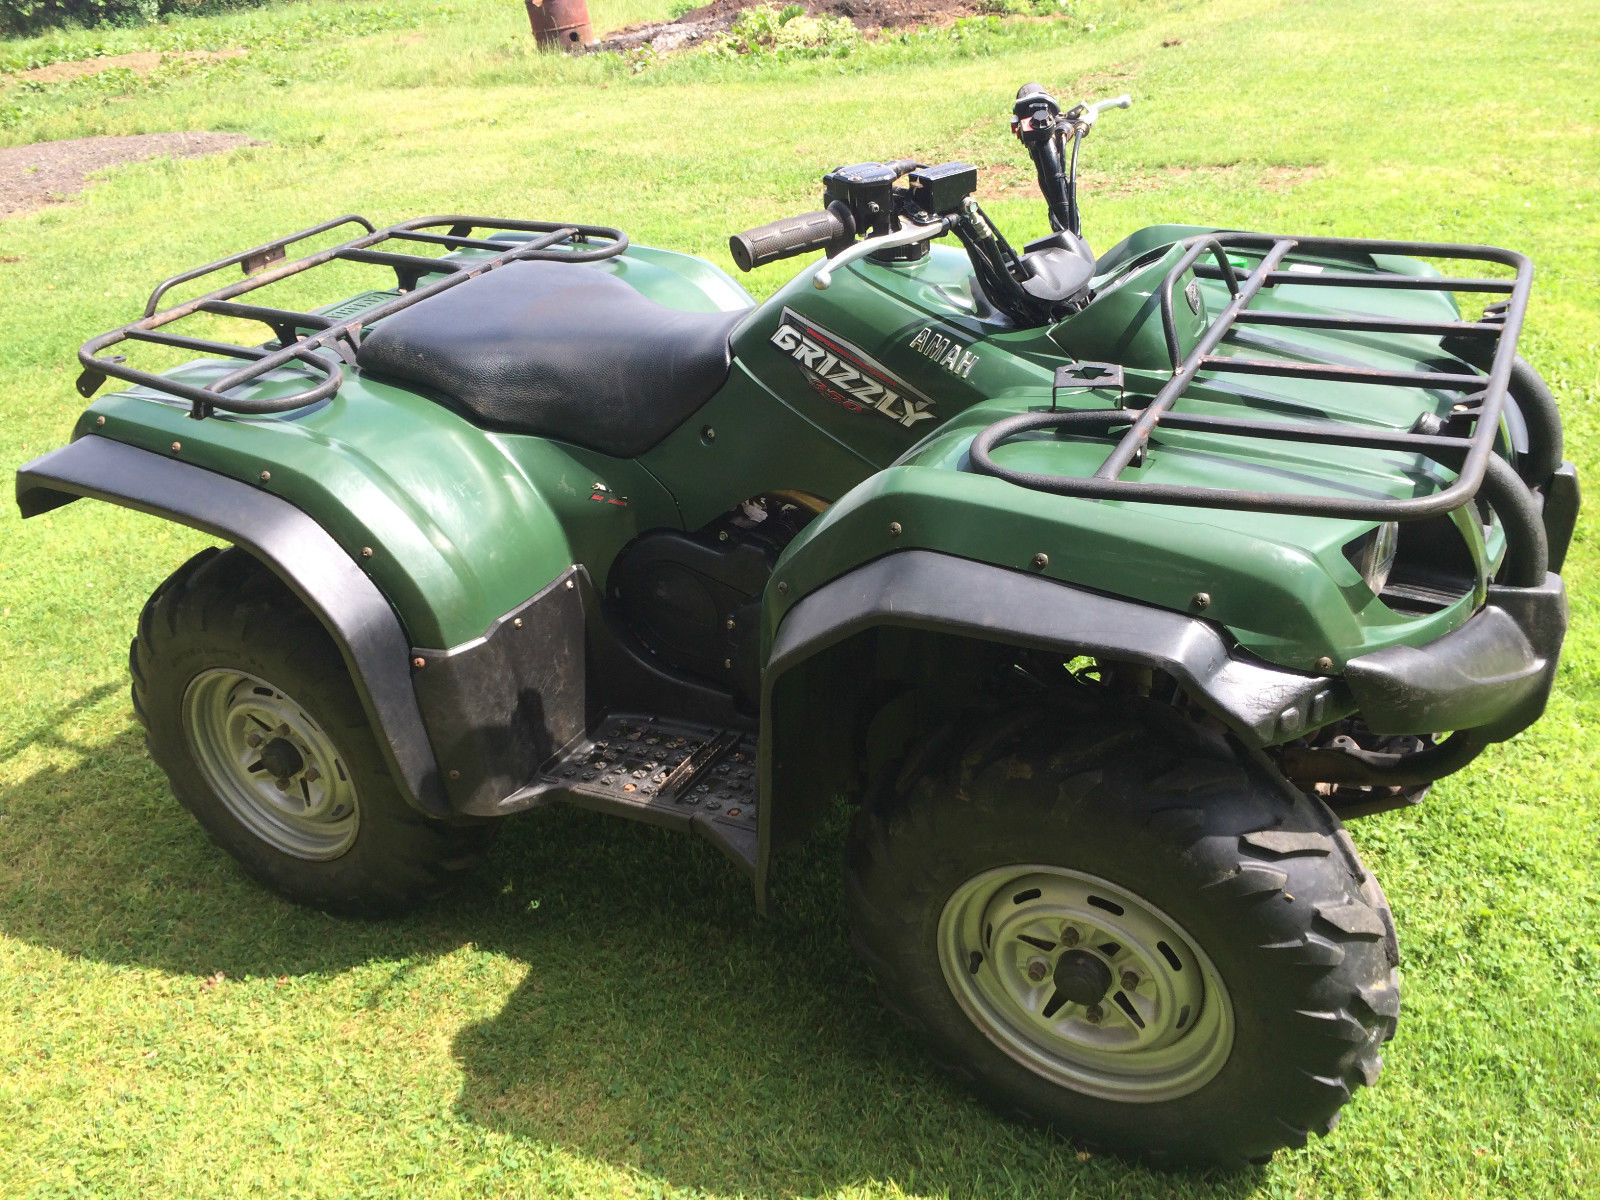 Yamaha grizzly 350 4x4 farm quad atv for Yamaha grizzly atv